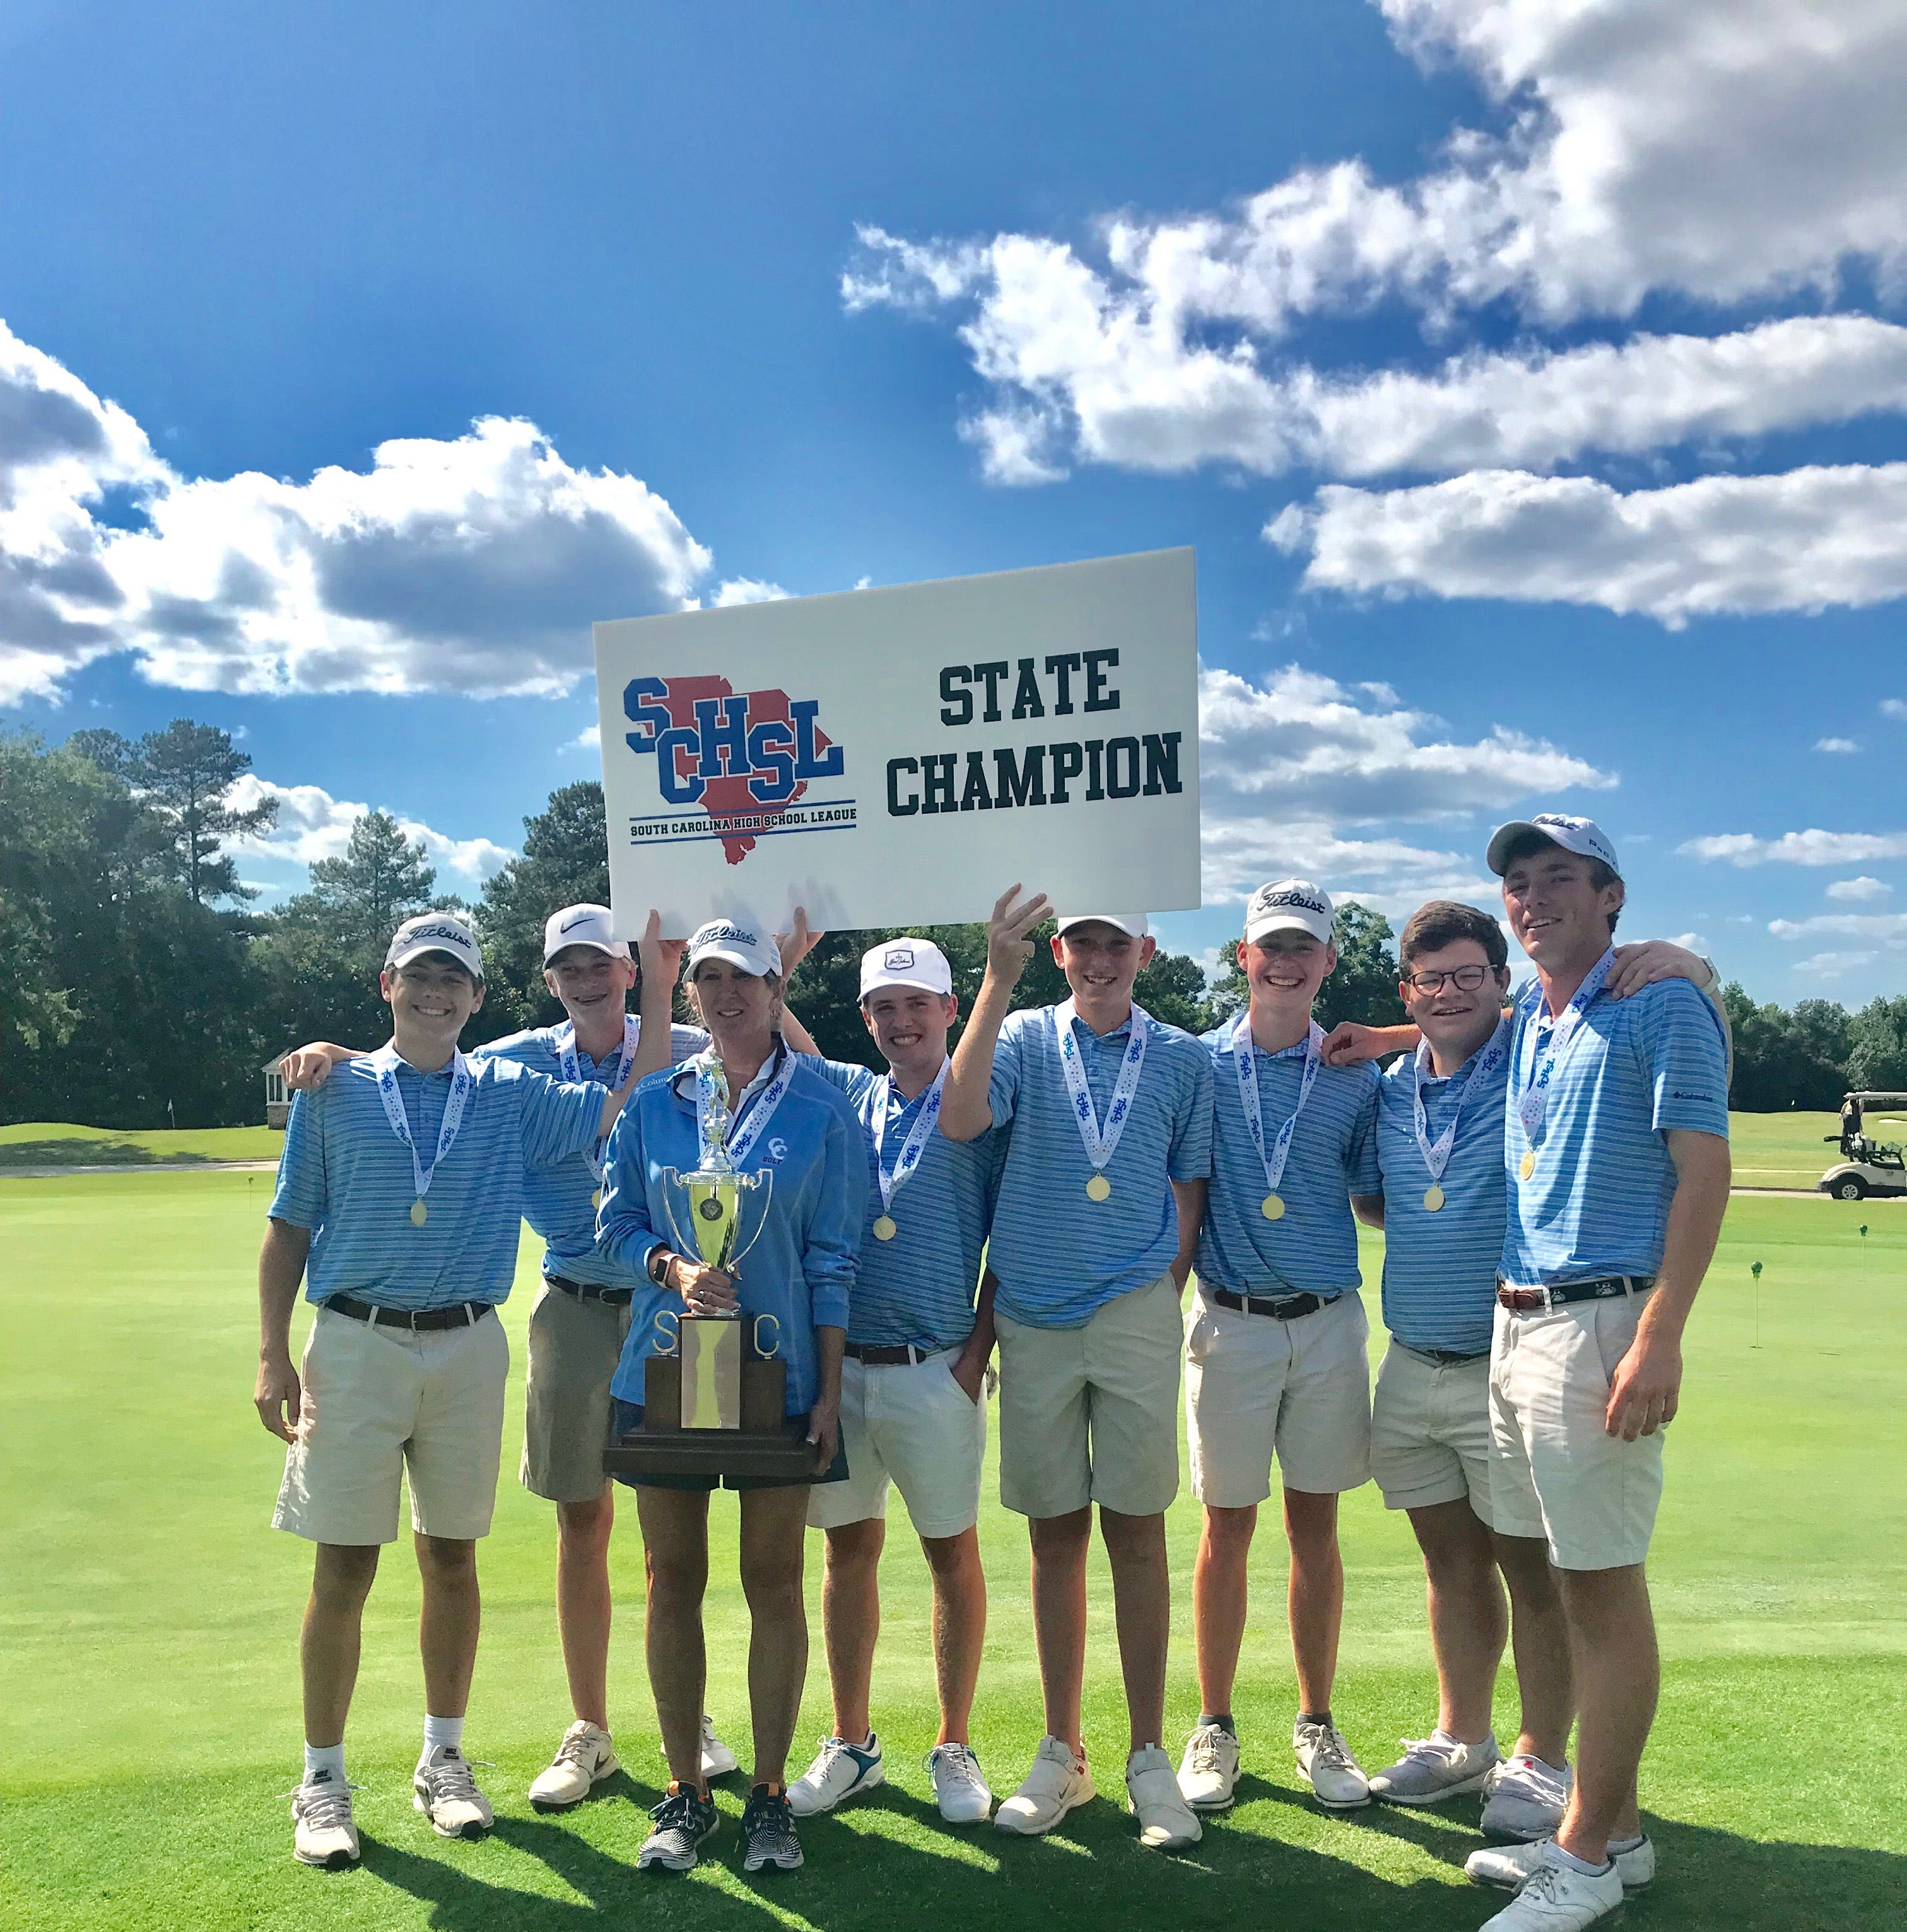 Christ Church boys golf wins its seventh straight SC state championship